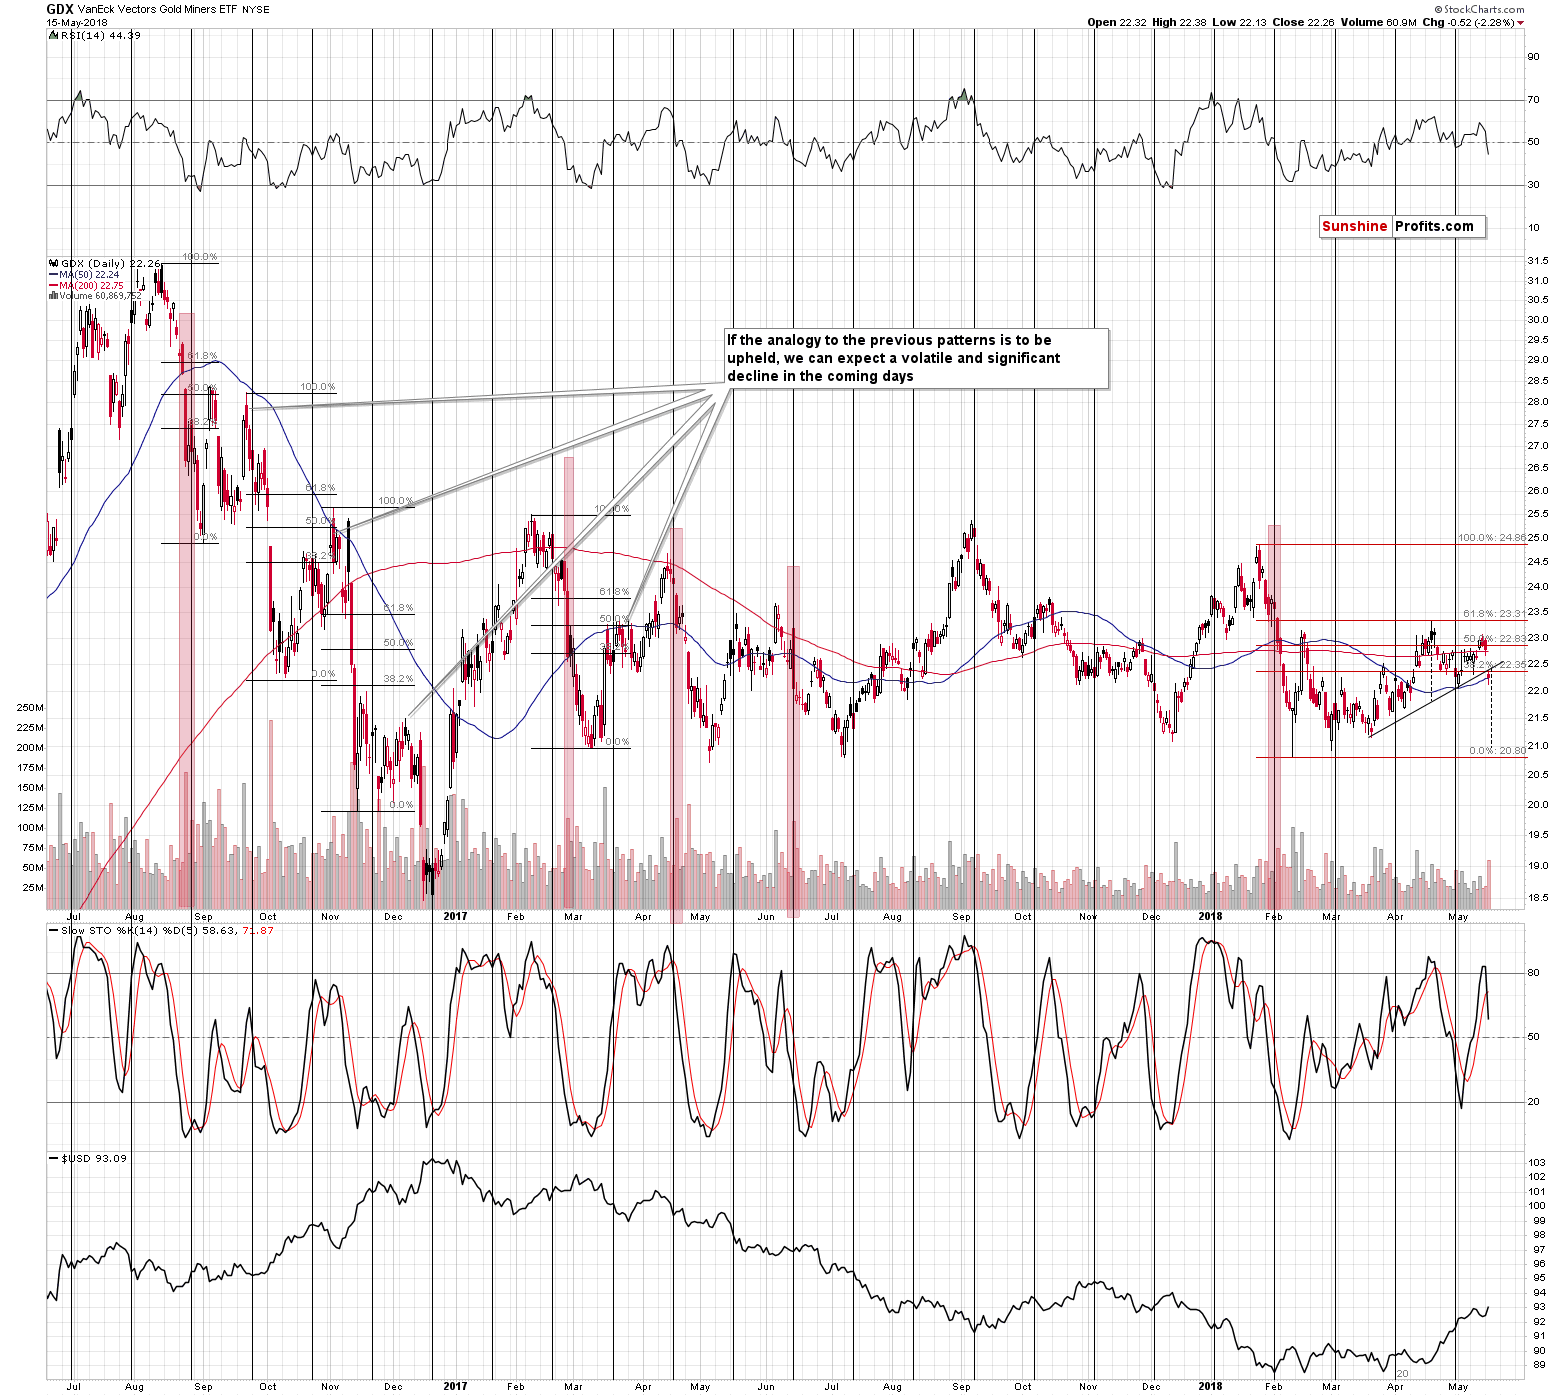 Gold Miners Show Technical Breakdown